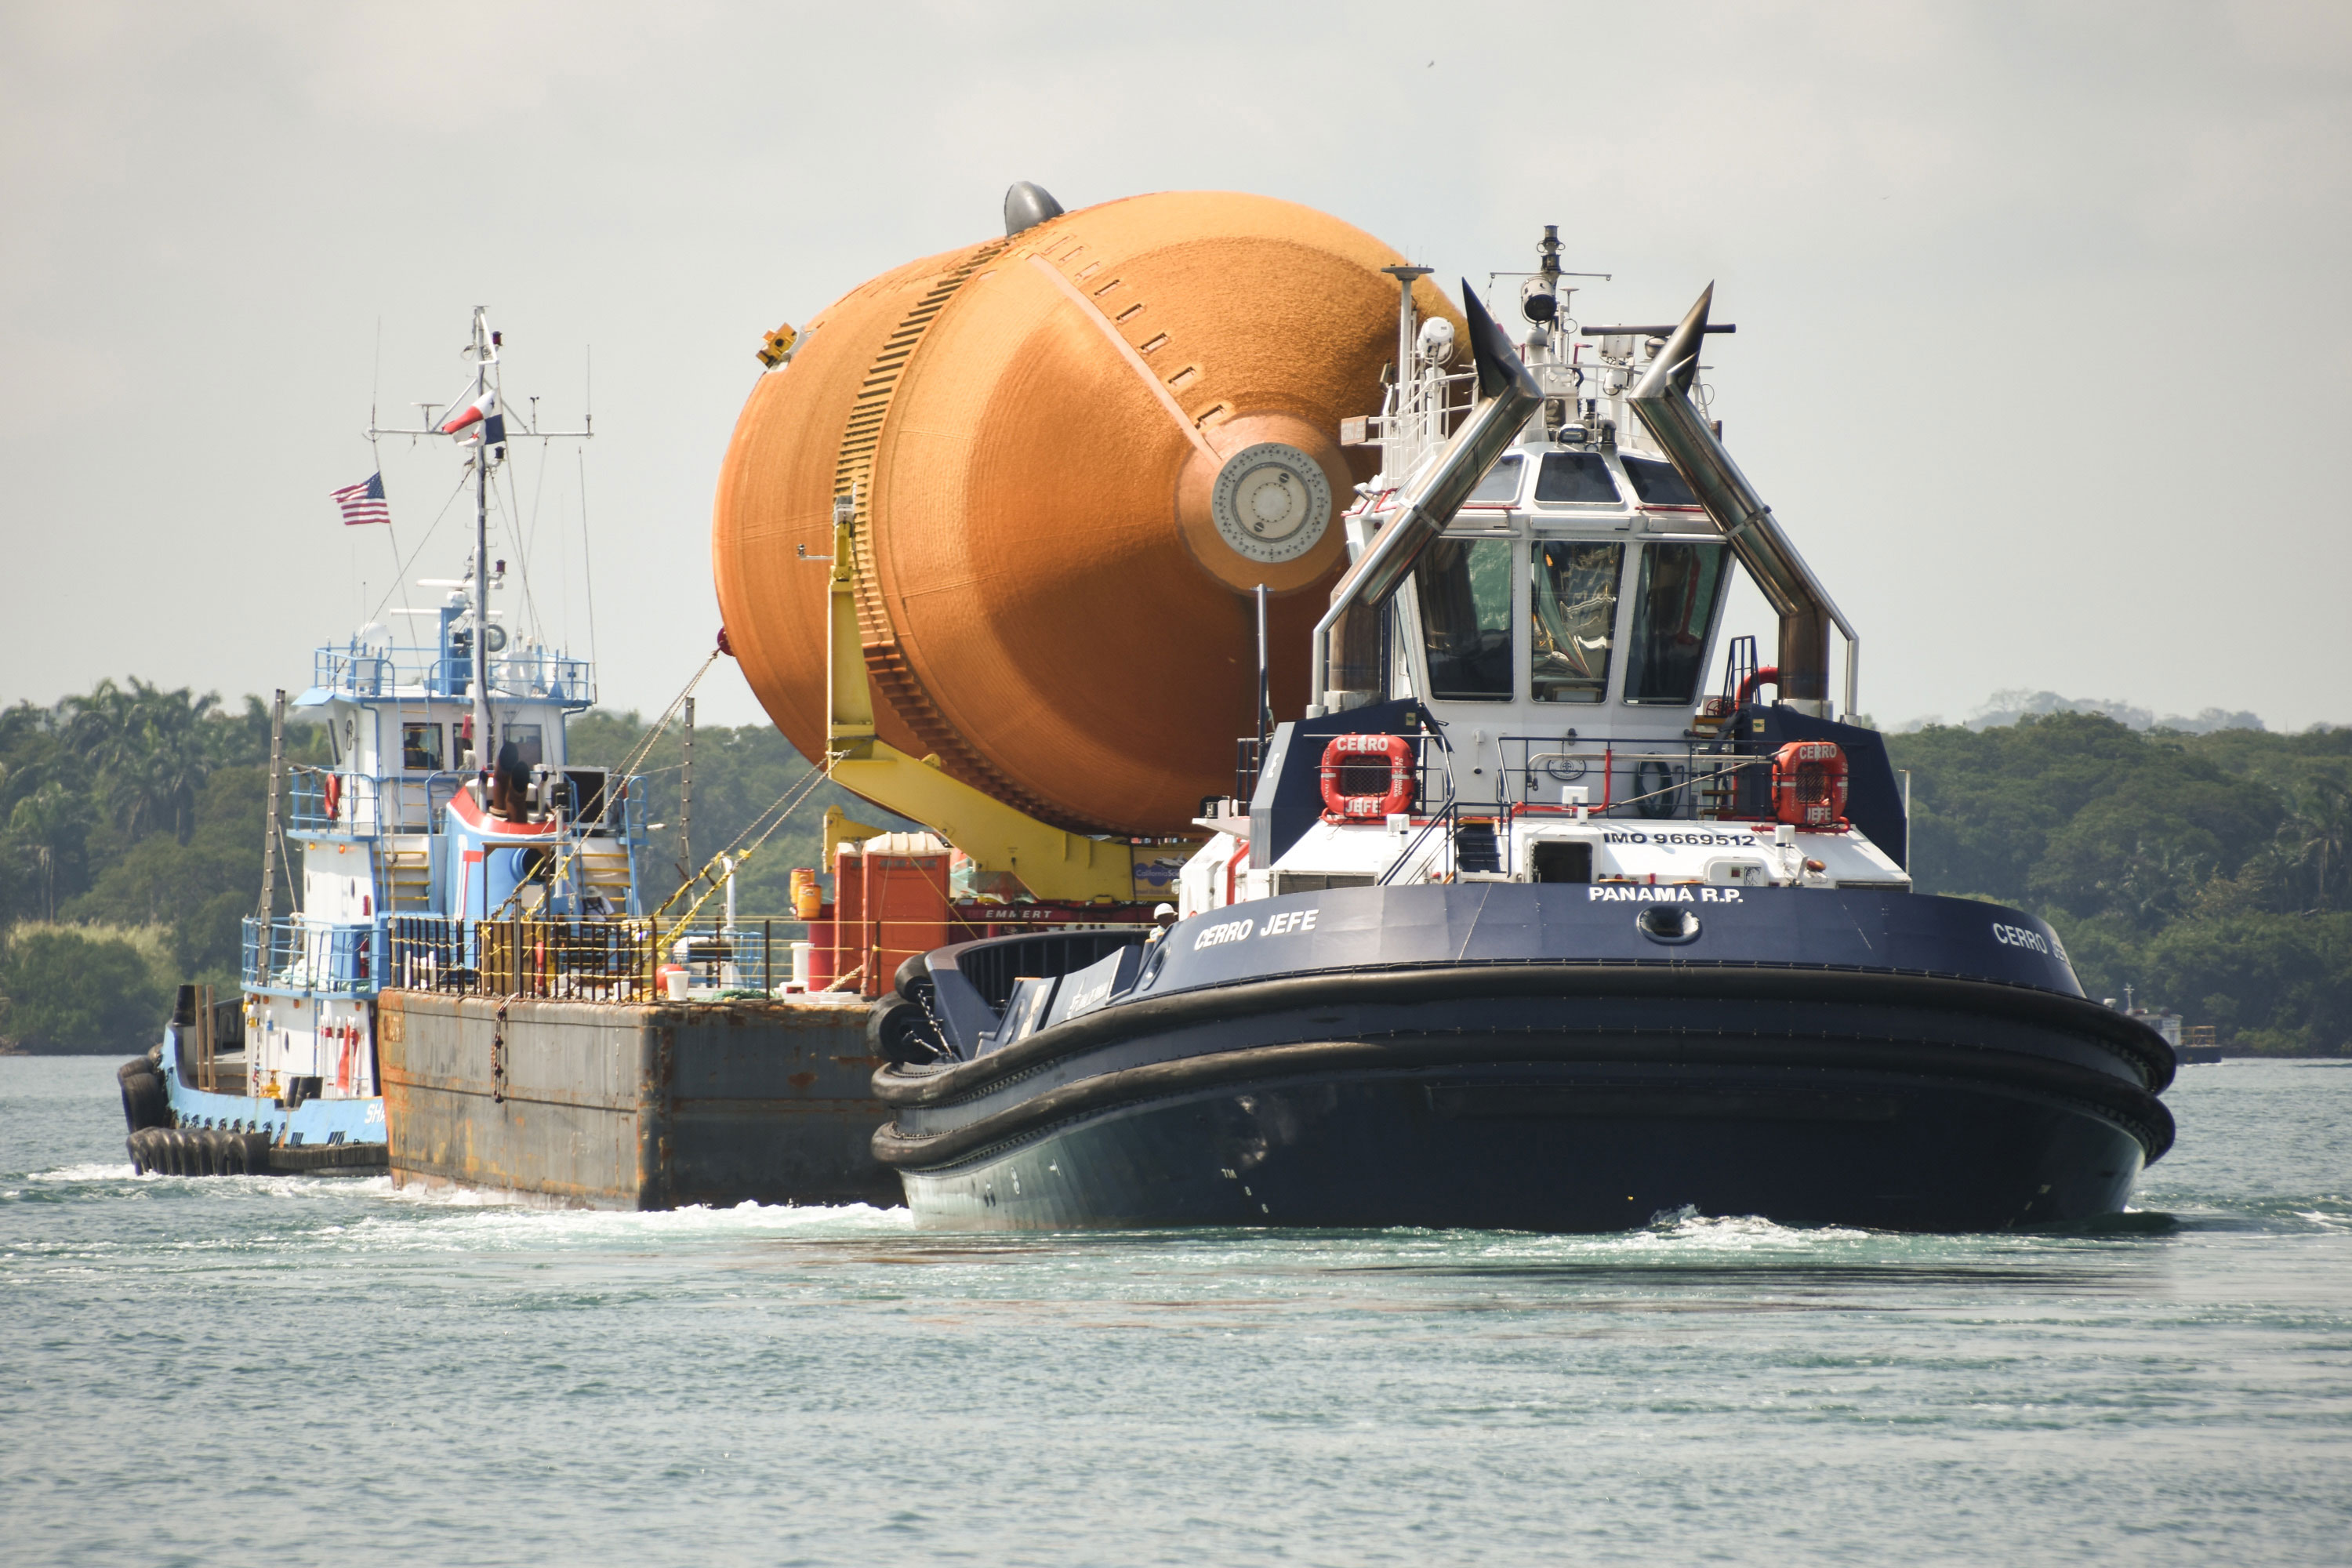 ET-94's journey from New Orleans to Los Angeles included an ocean faring route via barge that took it though the Panama Canal. Credit: Jason Davis/The Planetary Society (CC BY-NC-SA 2.0)